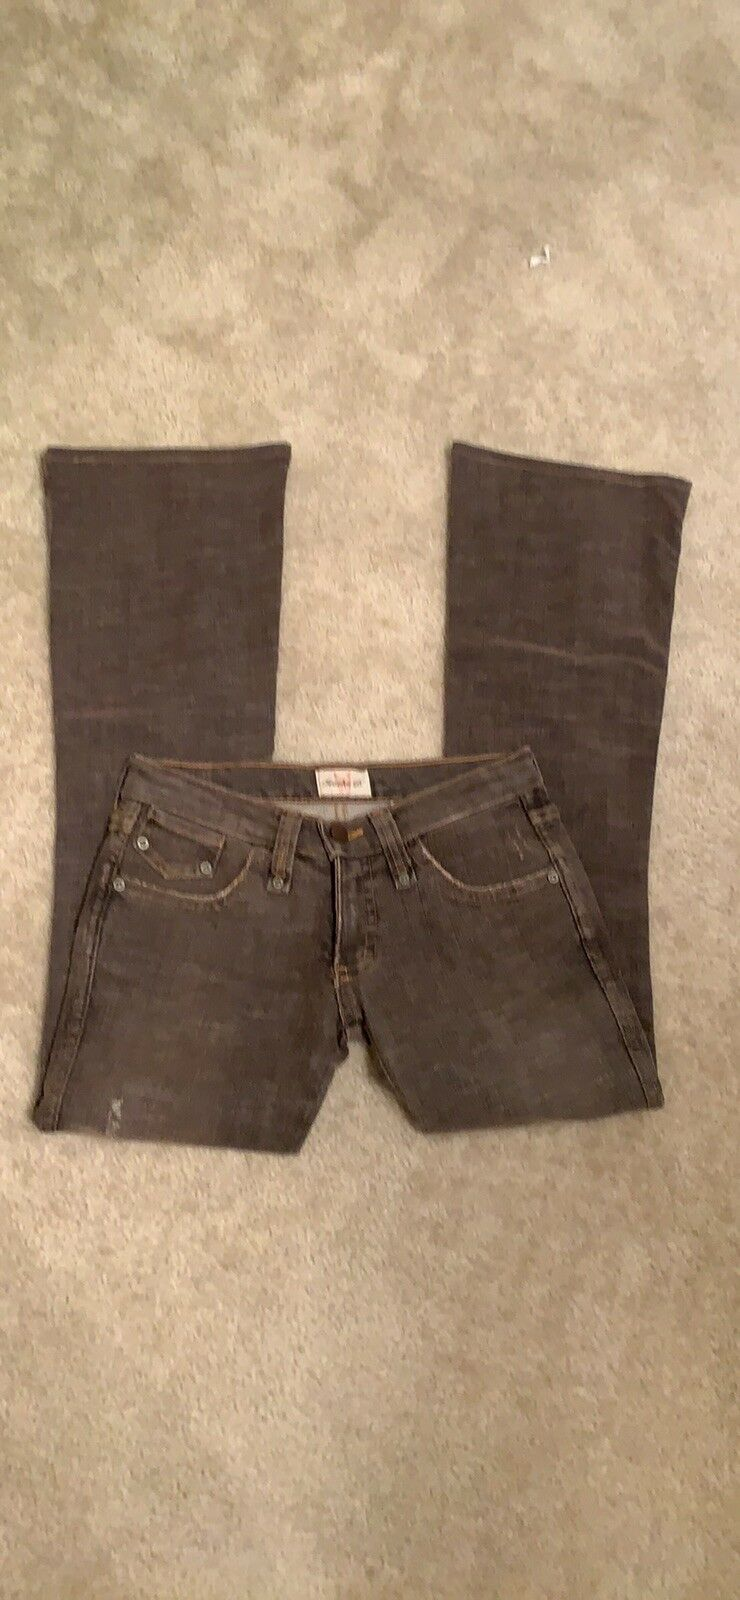 Sexy Frankie B. Low rise Brown Distressed Bootcut Jeans Sz 2